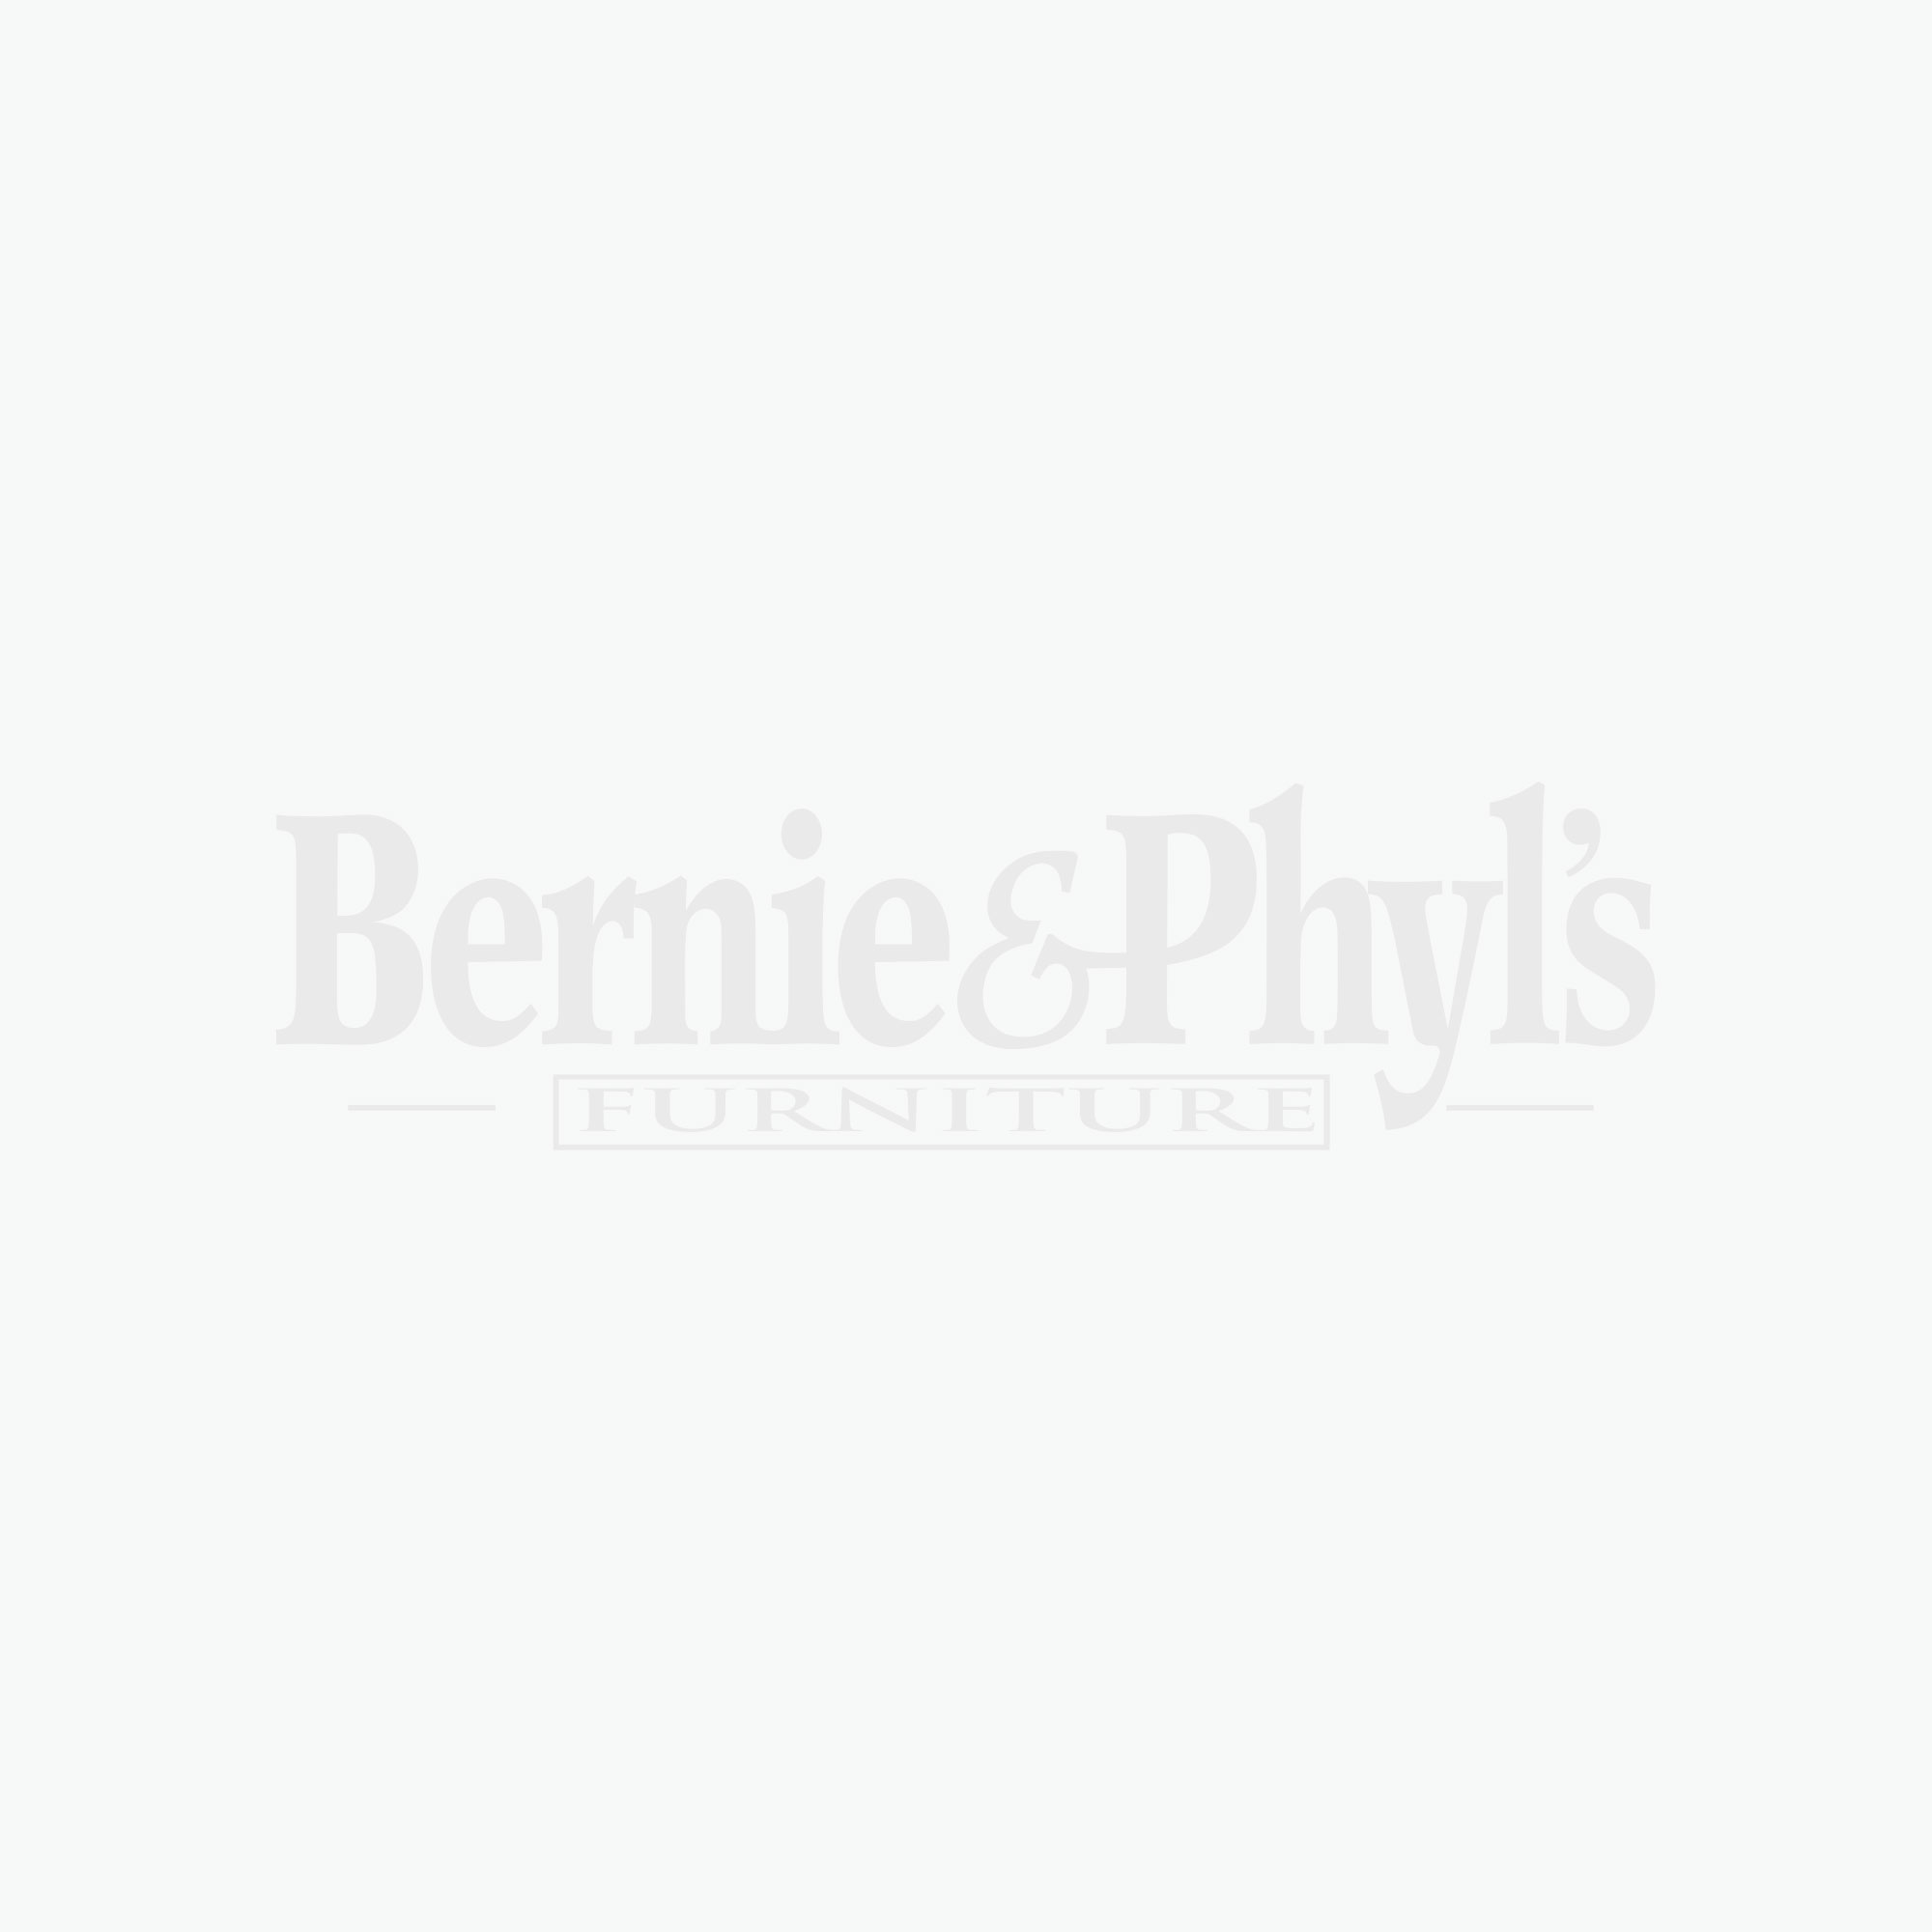 Burbank end table bernie phyl s furniture by jofran inc for Furniture stores in burbank